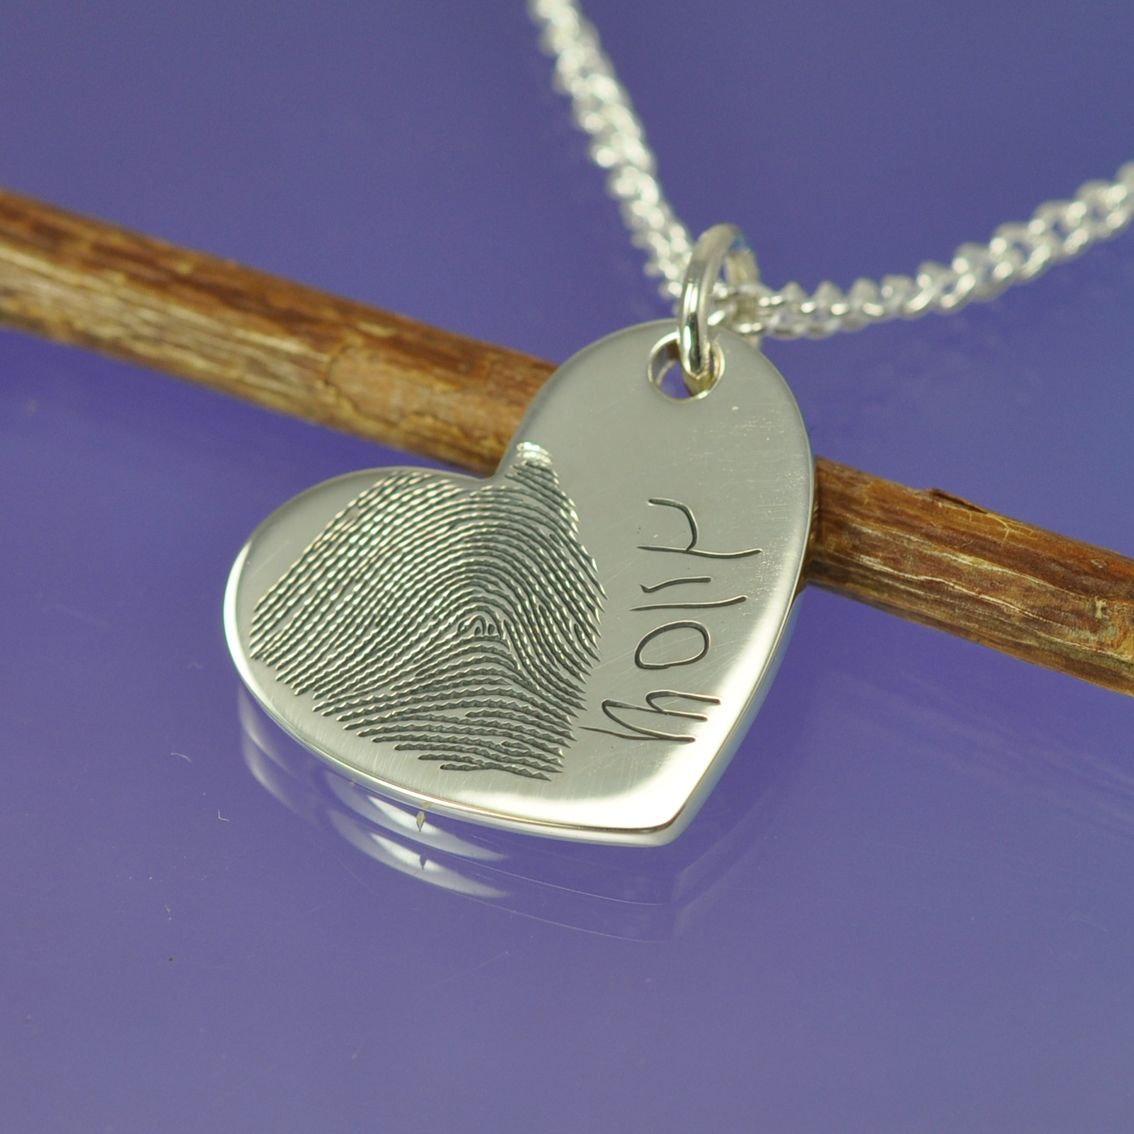 moon love anything the you il products by fullxfull fingerprint necklace say personalized silver engraved jewelry fine to family